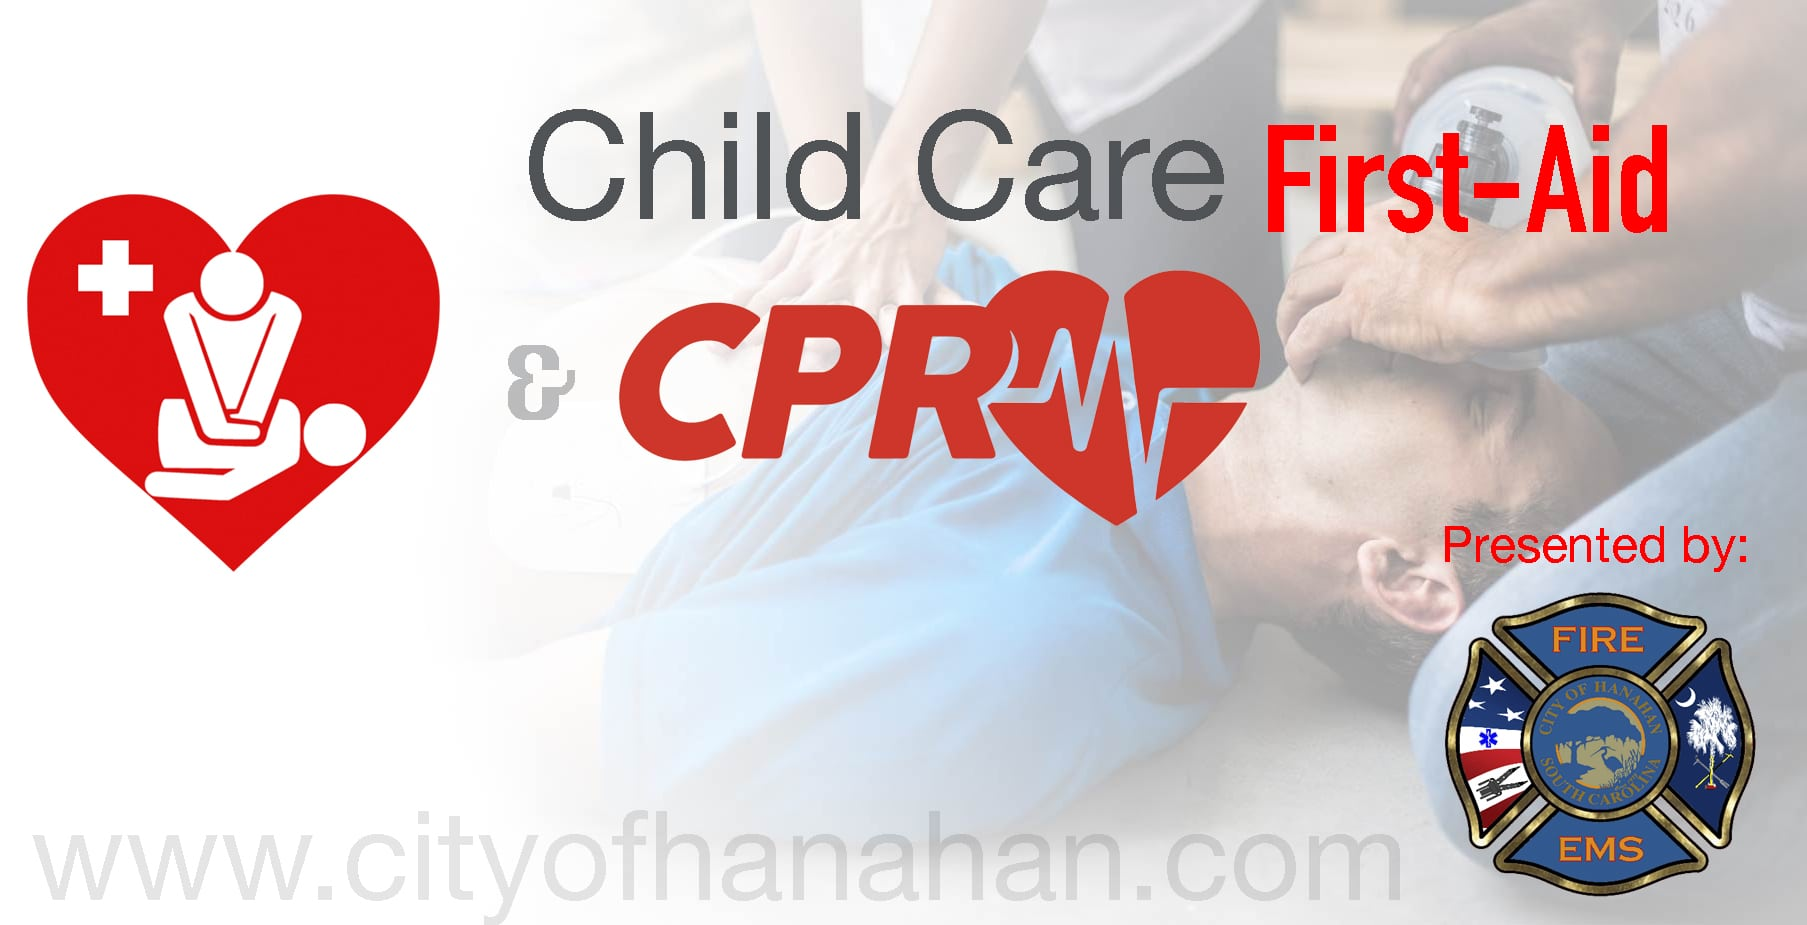 Child Care First Aid Cpr Training City Of Hanahan